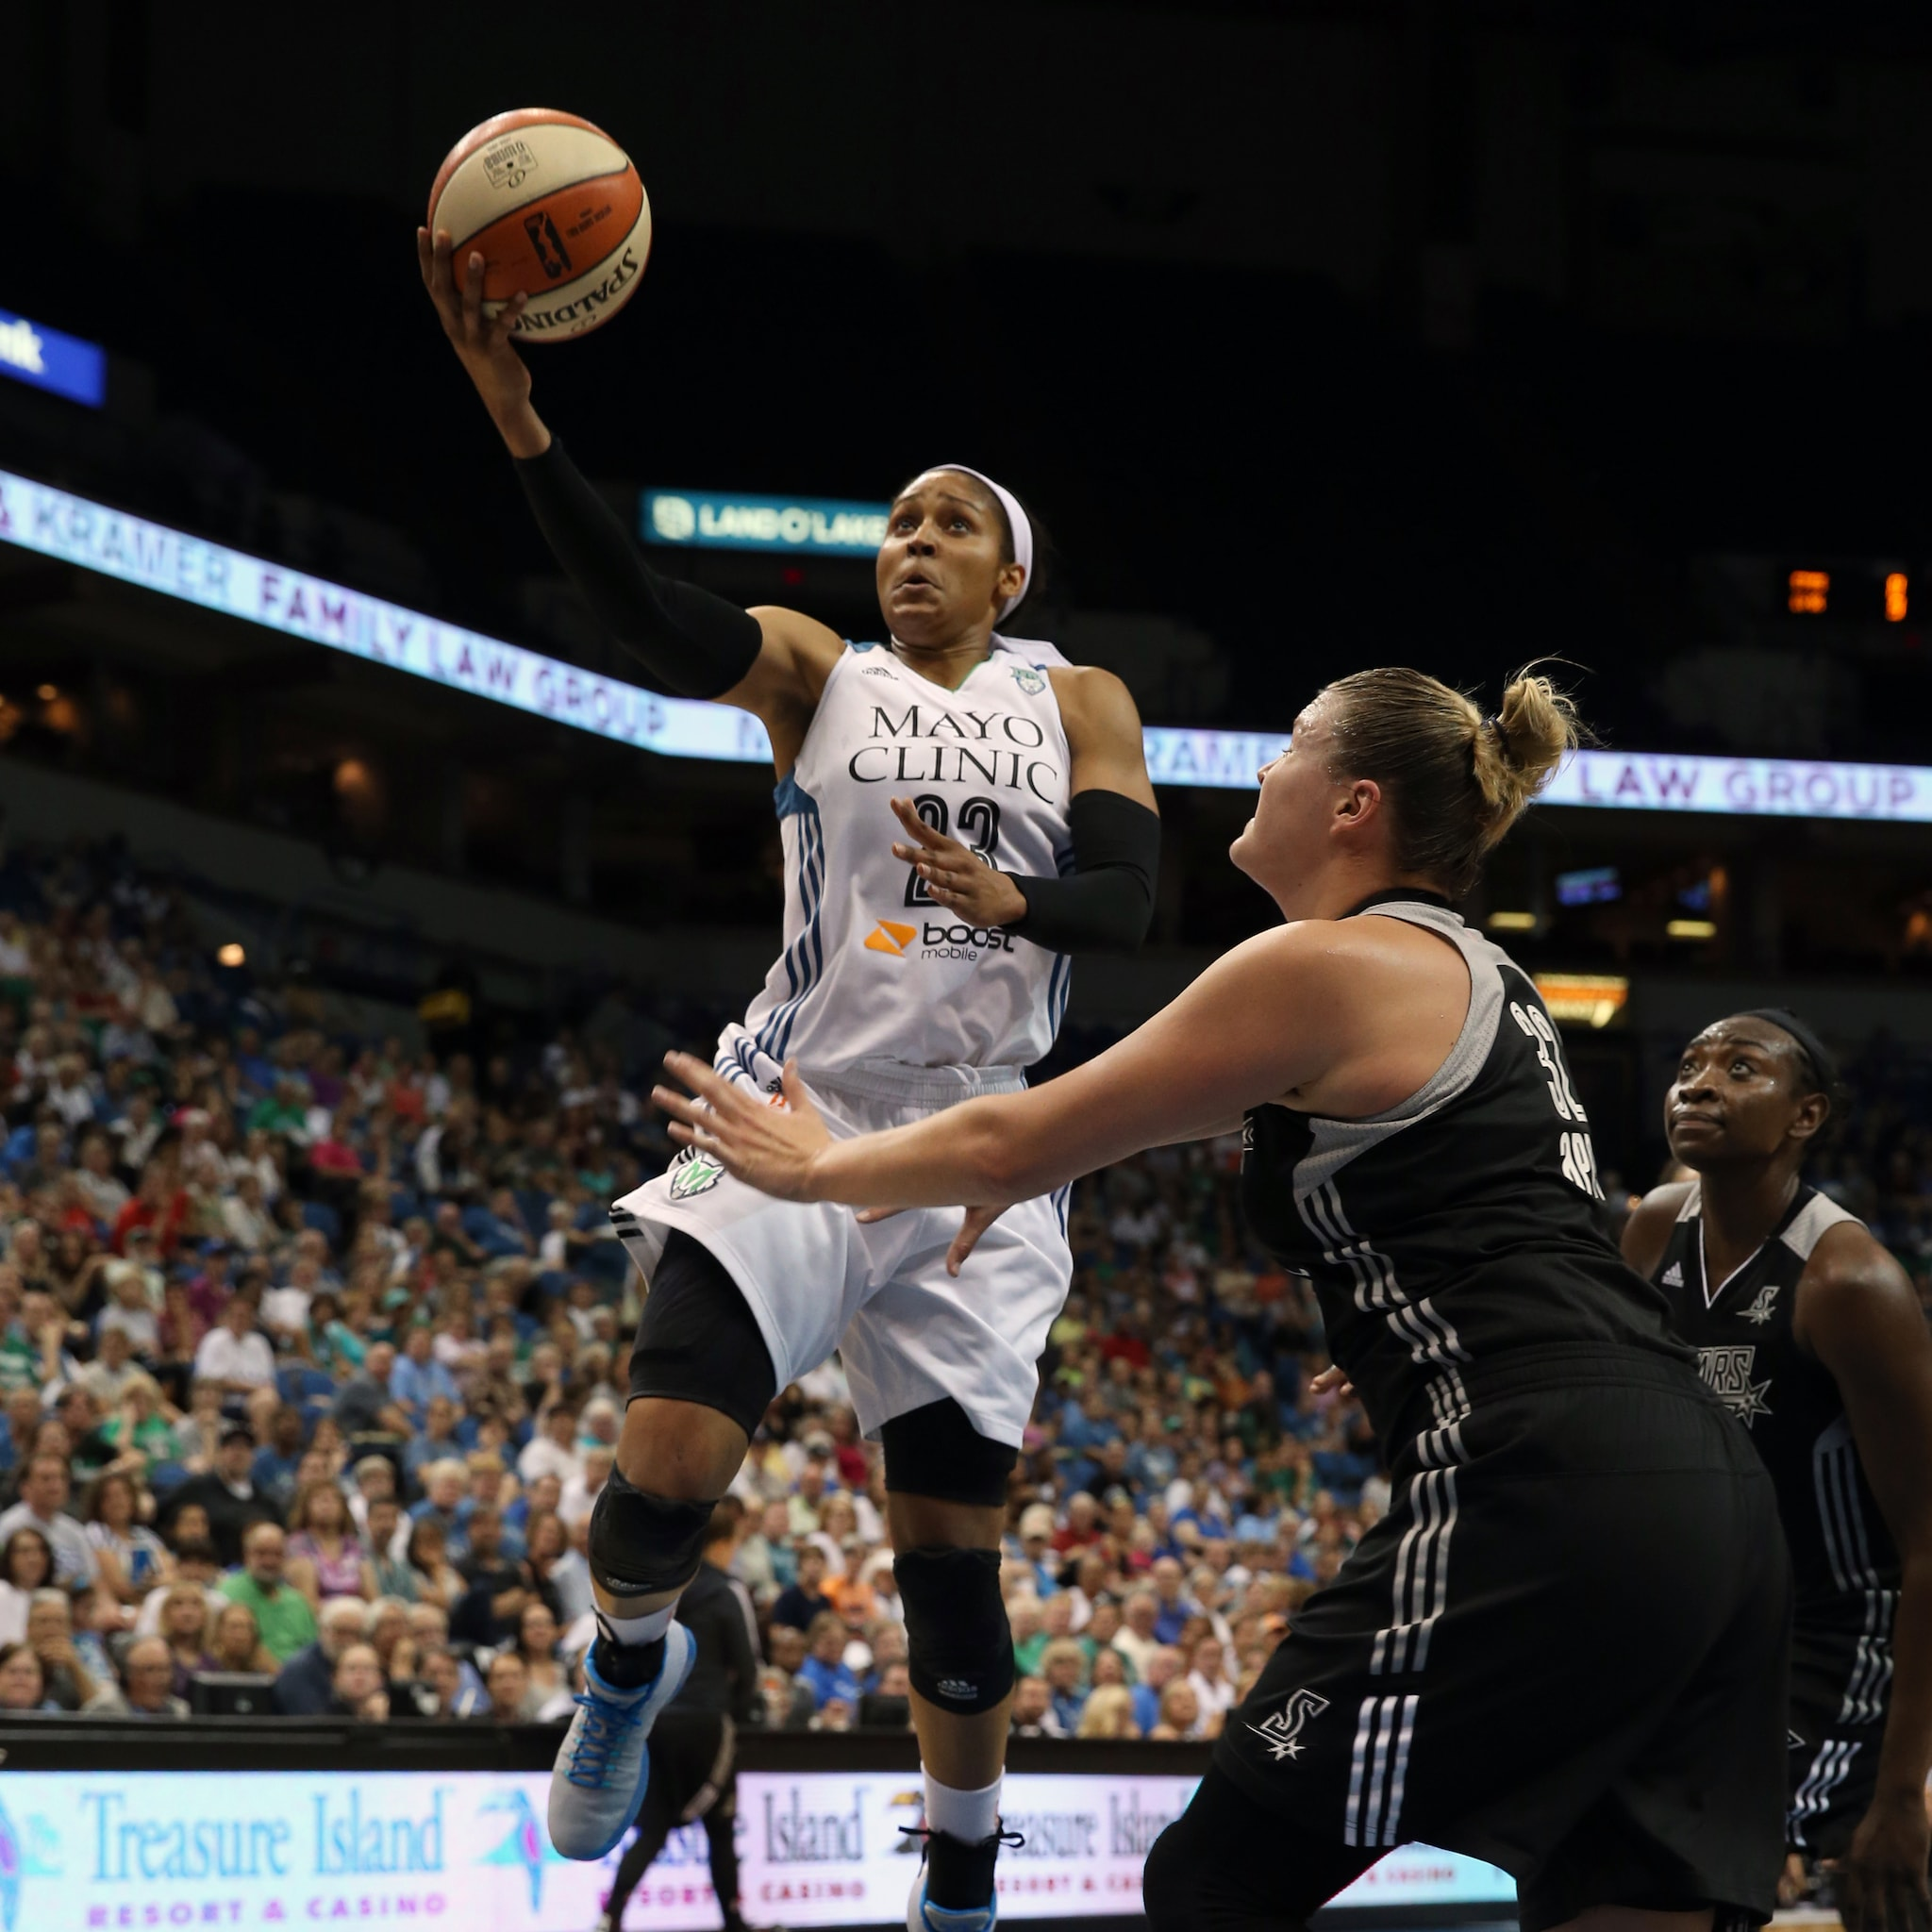 Lynx forward Maya Moore led the way yet again, scoring 20 points while adding nine rebounds and three assists. It was the fourth straight game that Moore has scored 20+ points and her sixth of the season.